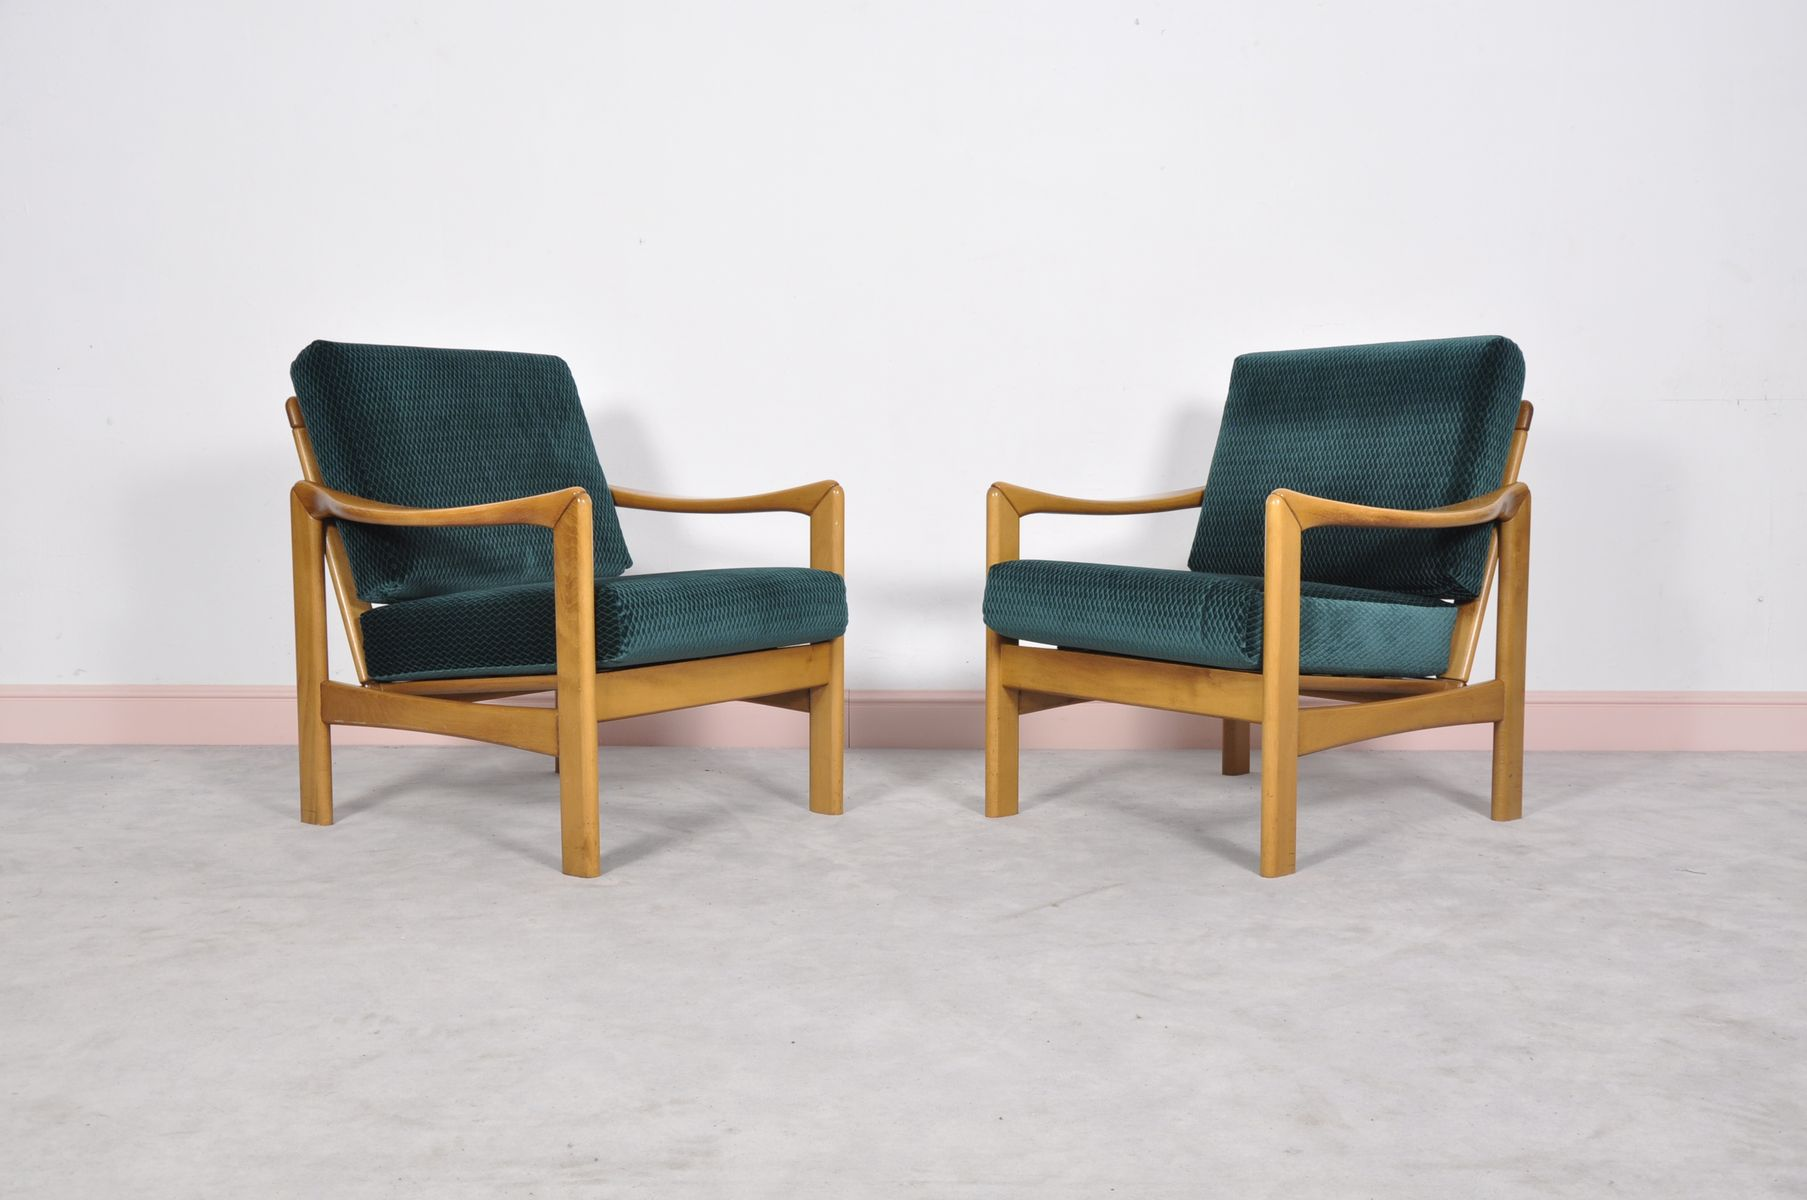 Mid Century Modern Teak Lounge Chairs Set of 2 for sale at Pamono